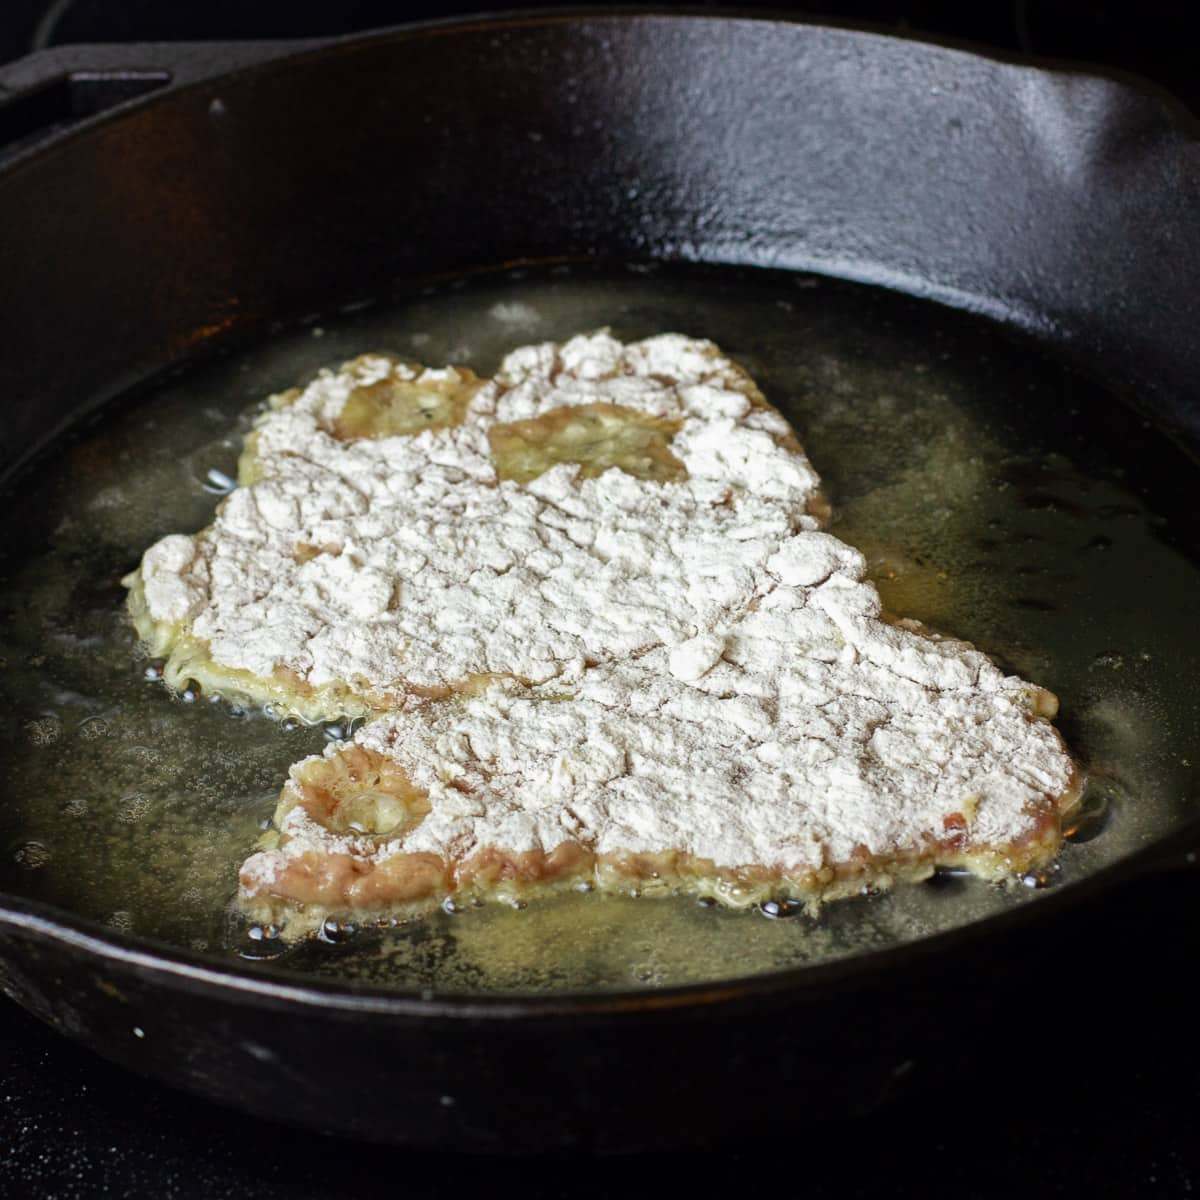 Dredge the tenderized steak with flour and egg wash.